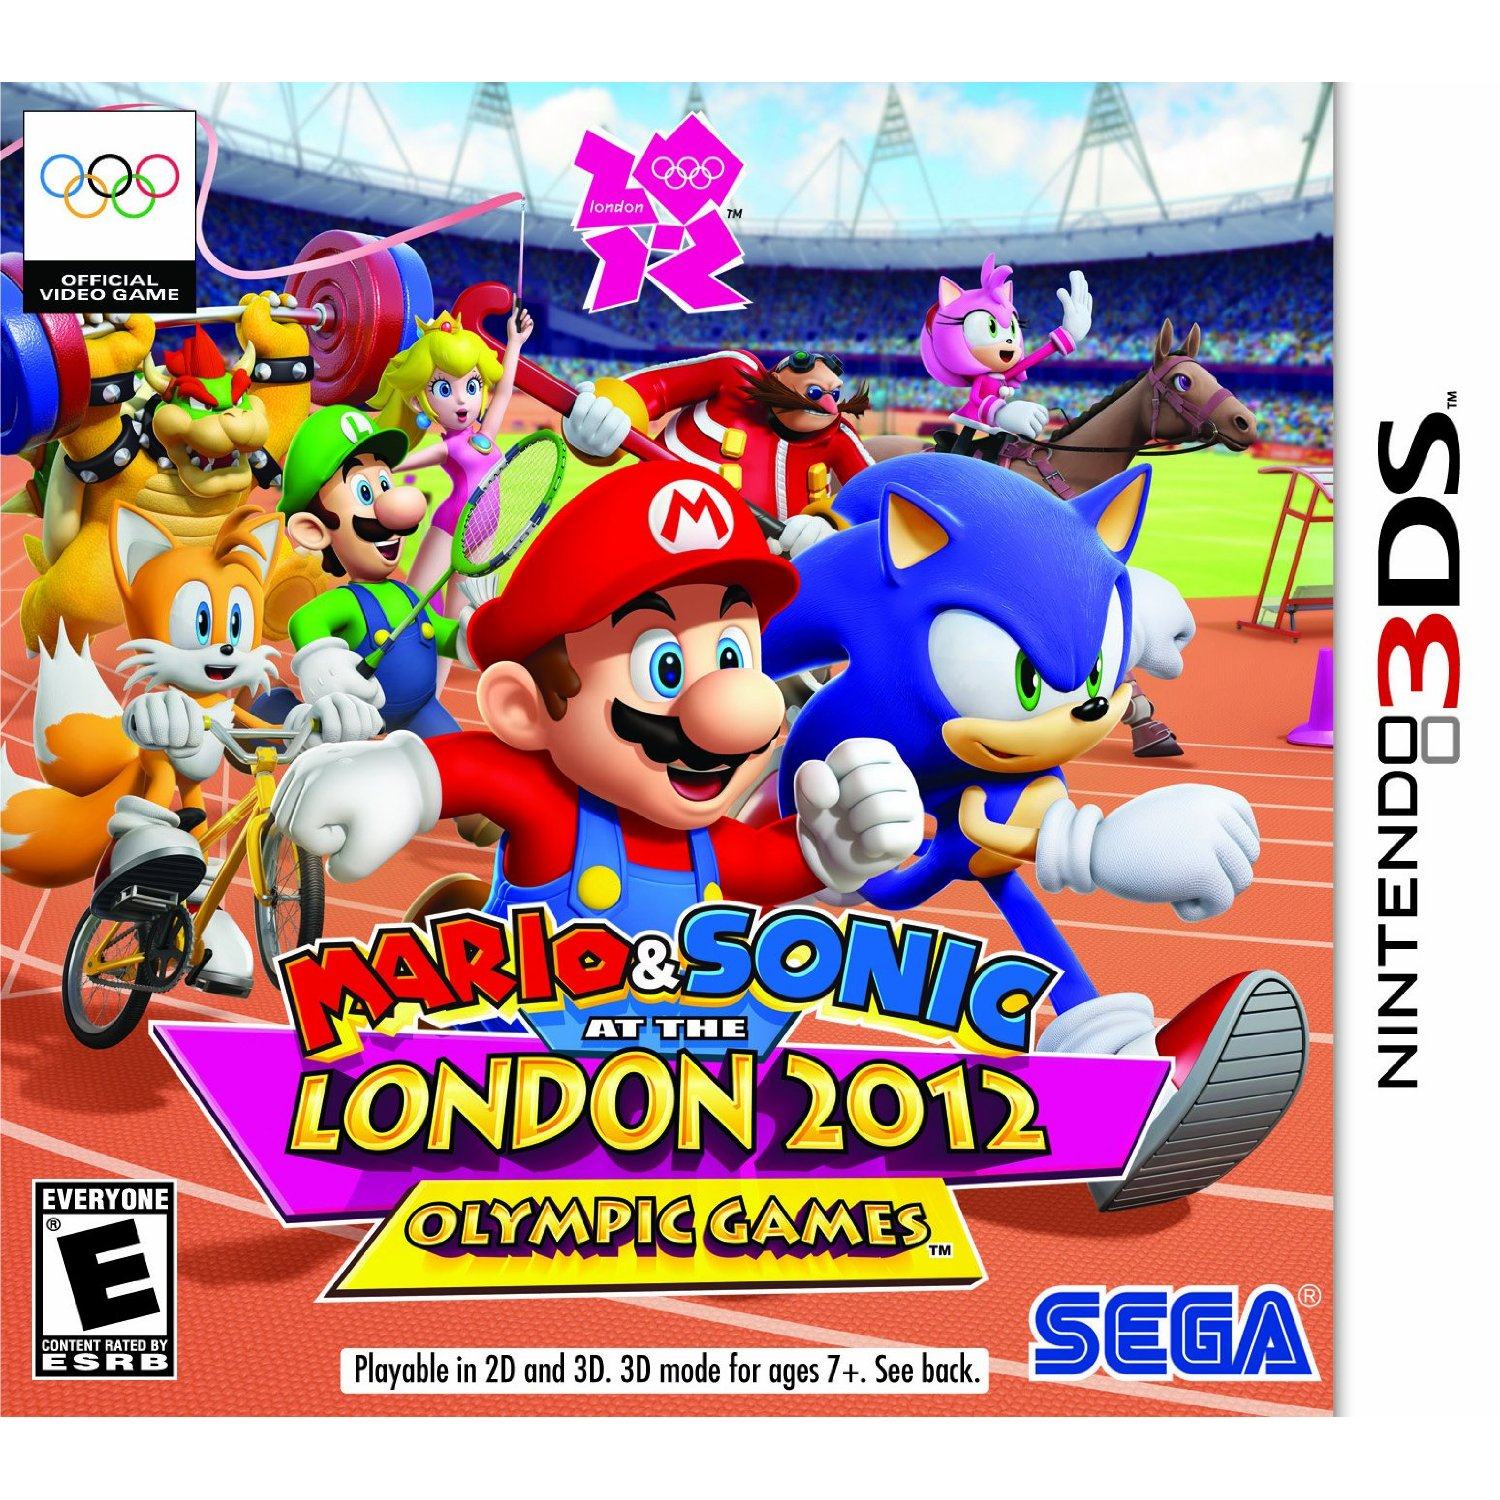 Mario & Sonic at the London 2012 Olympic Games 3DS US Box Art